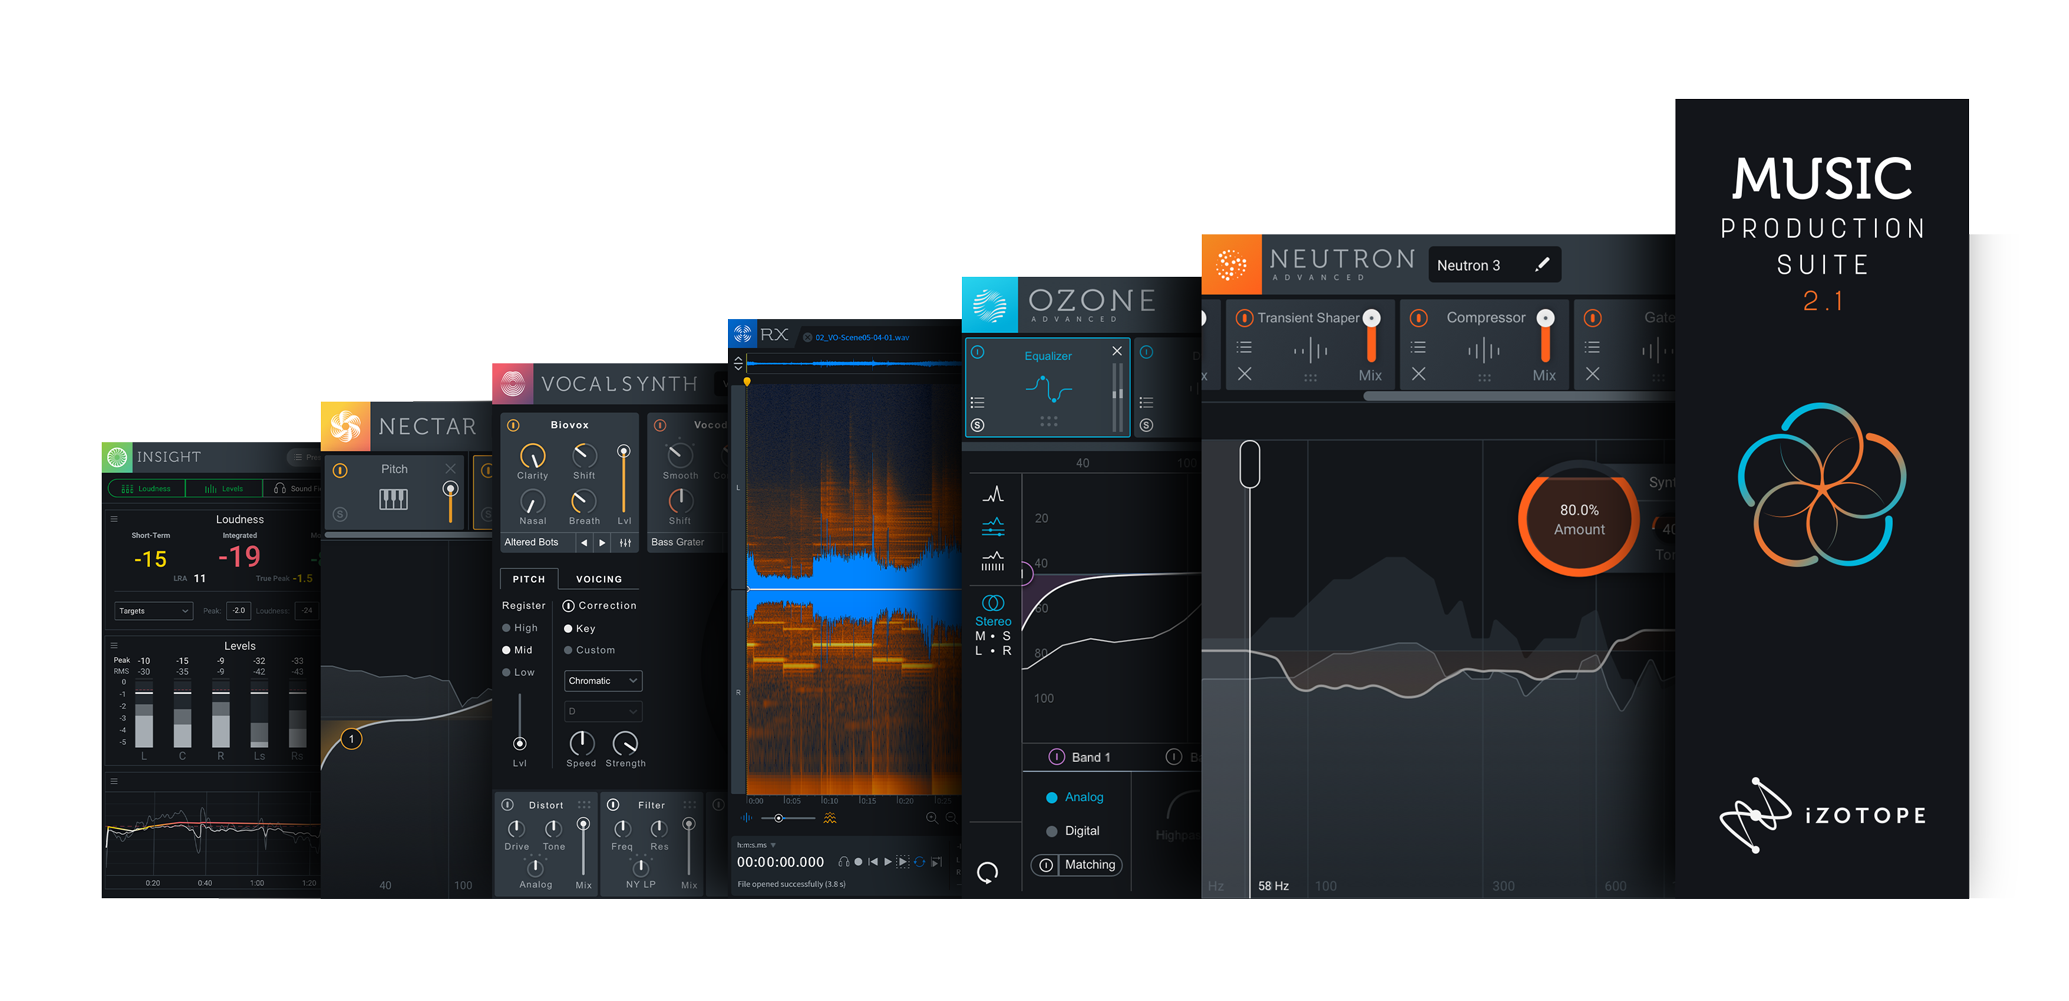 iZotope MUSIC PRODUCTION SUITE 2 1 + STEREO REVERB BUNDLE ESD